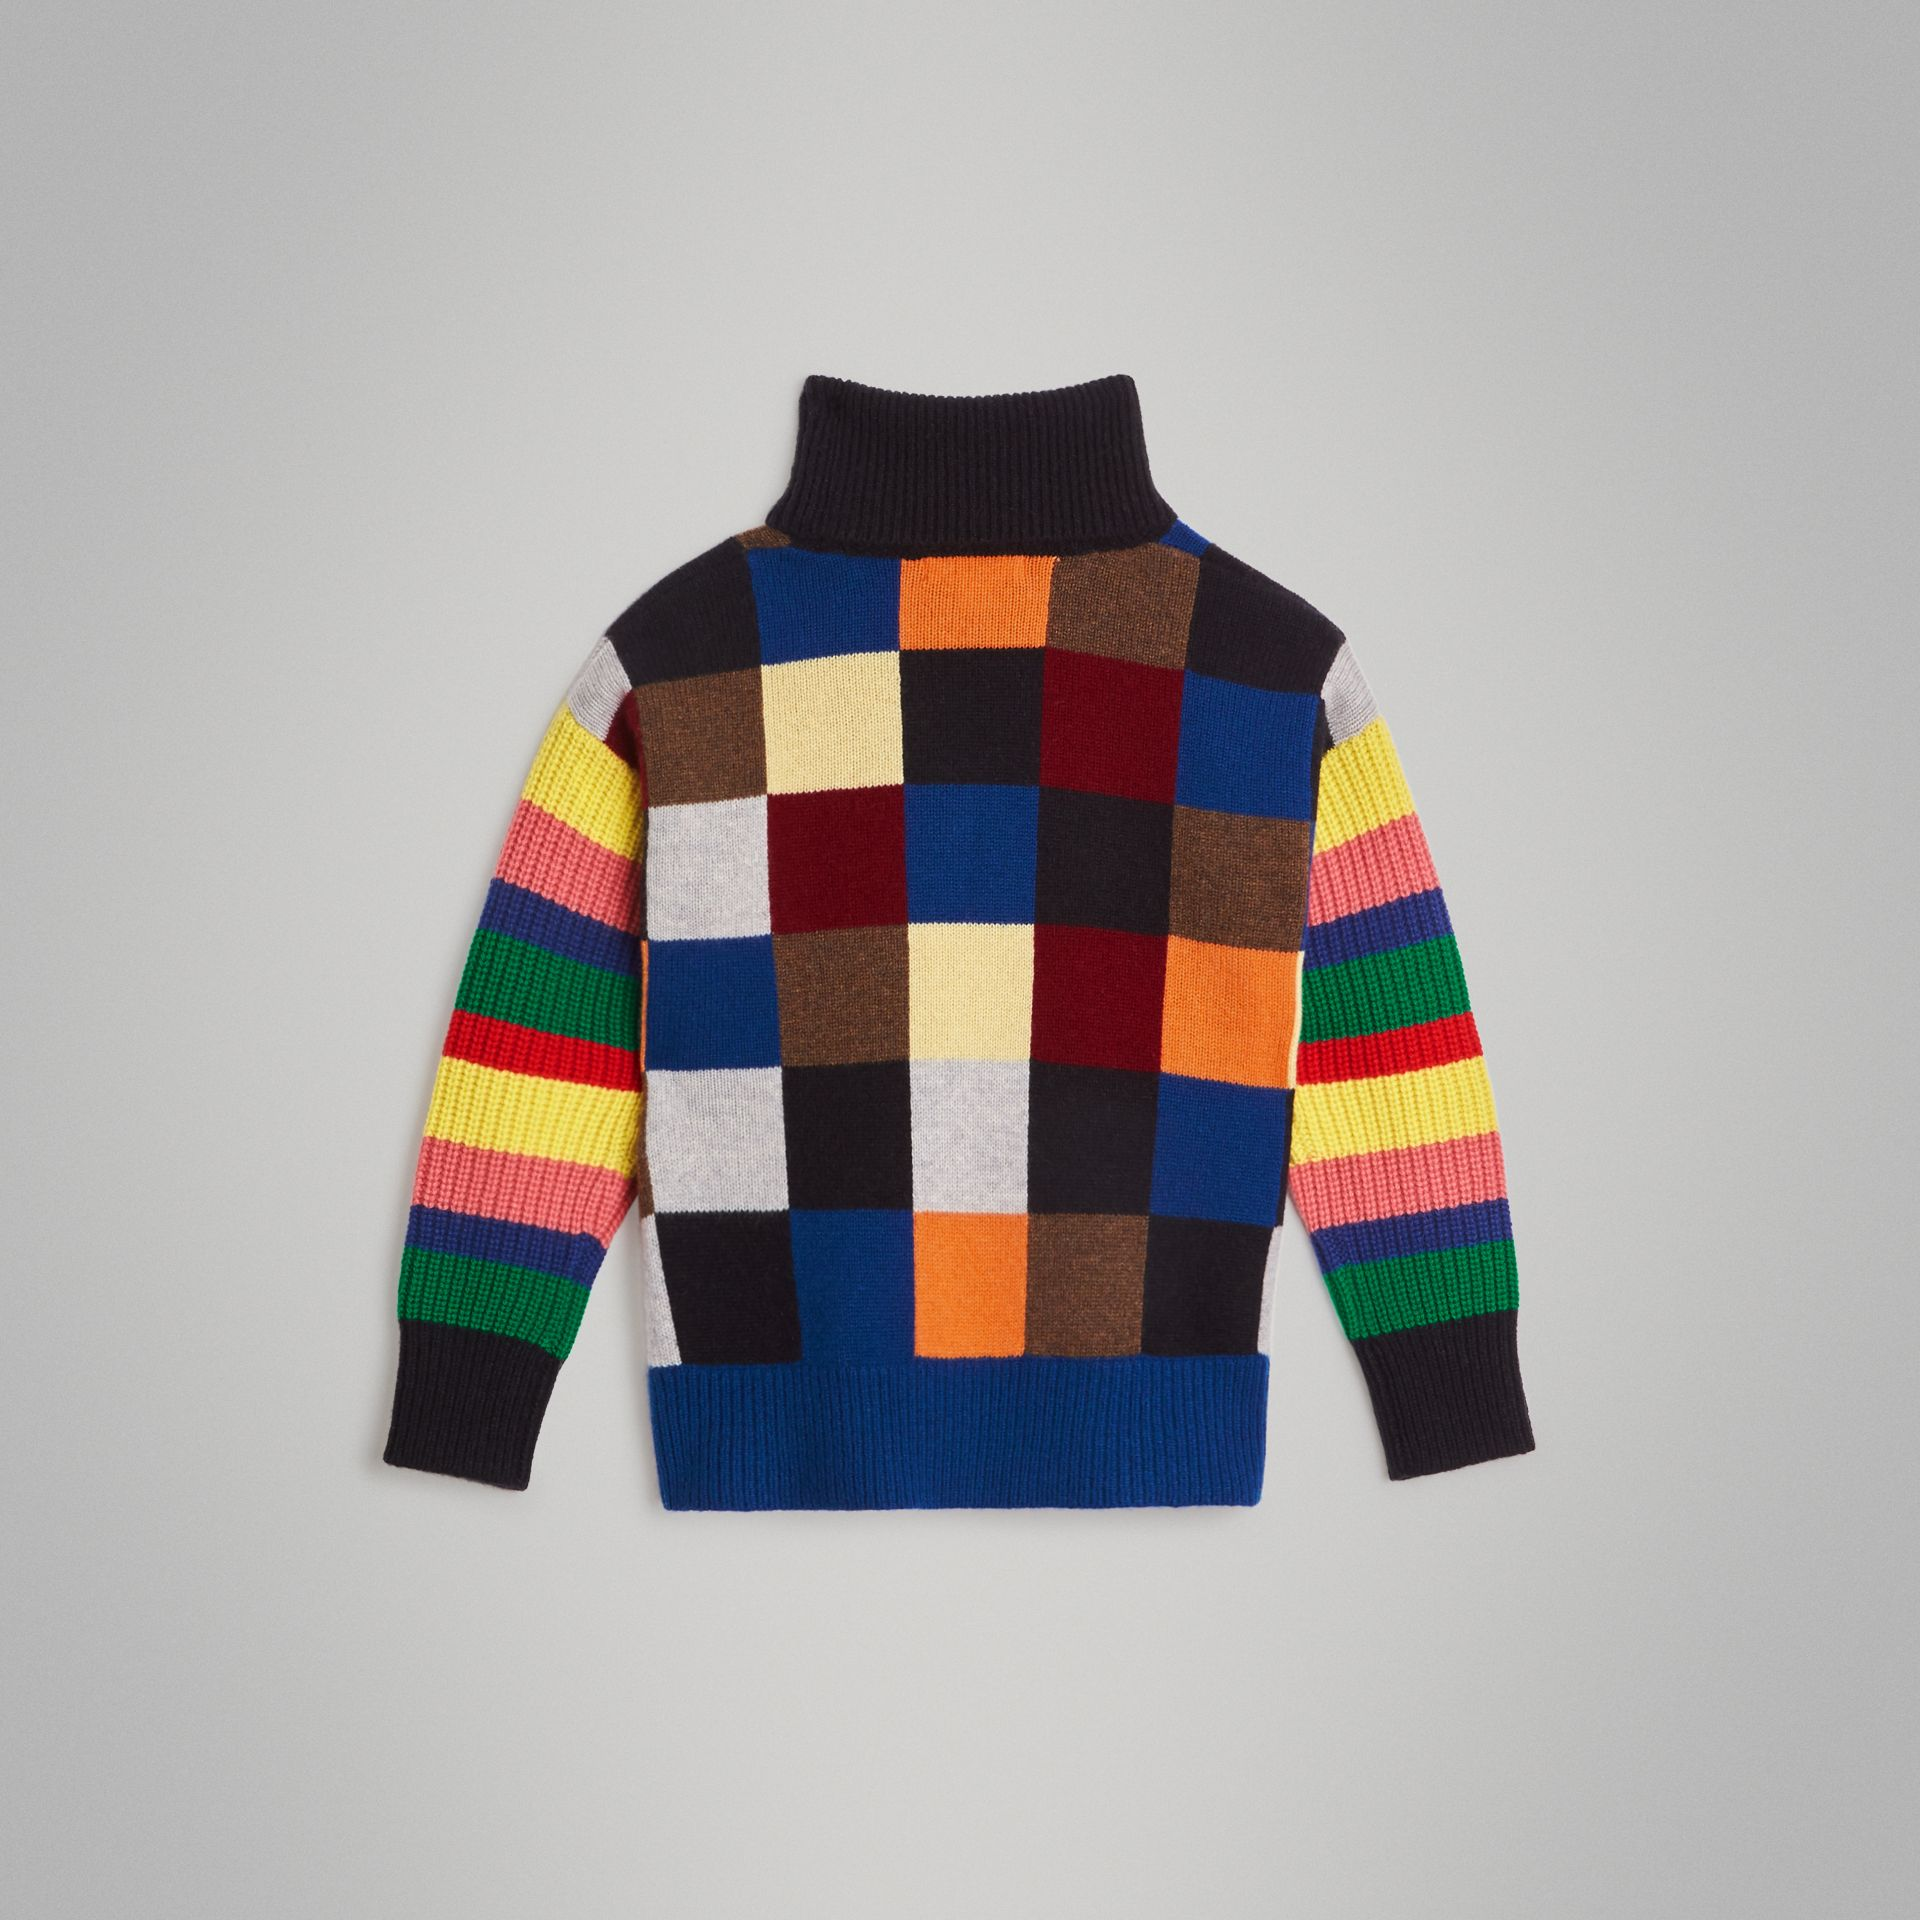 Patchwork Cashmere Roll-neck Sweater in Multicolour | Burberry United States - gallery image 3